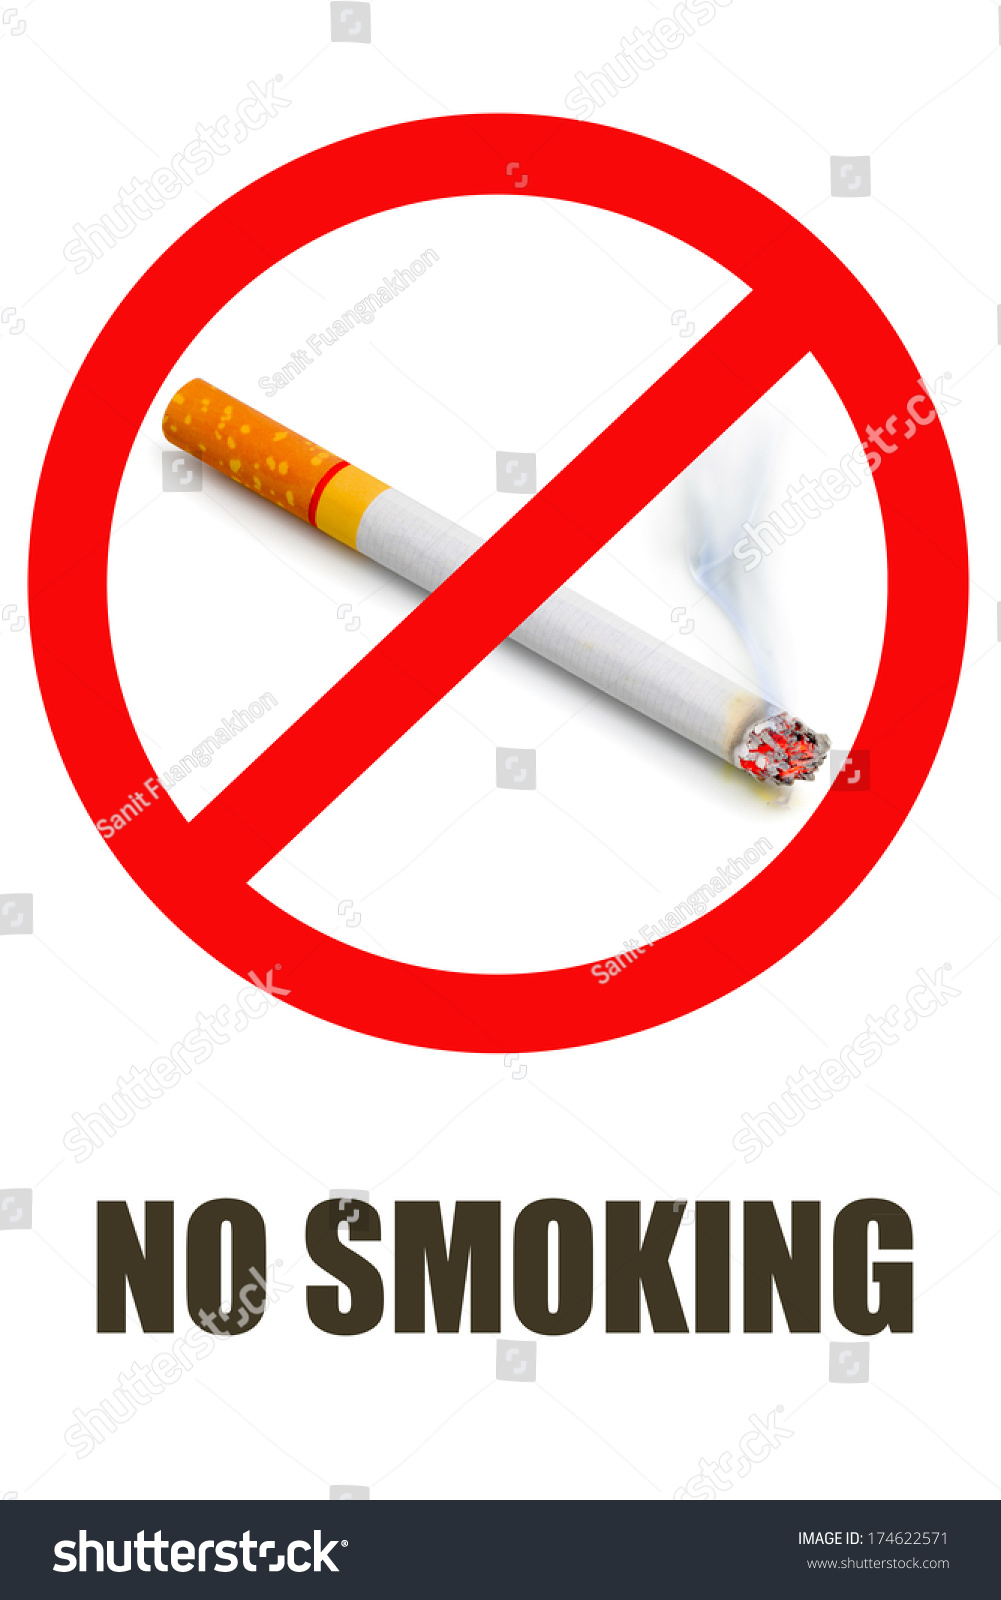 No smoking symbol text on white stock photo 174622571 shutterstock no smoking symbol and text on white background buycottarizona Images